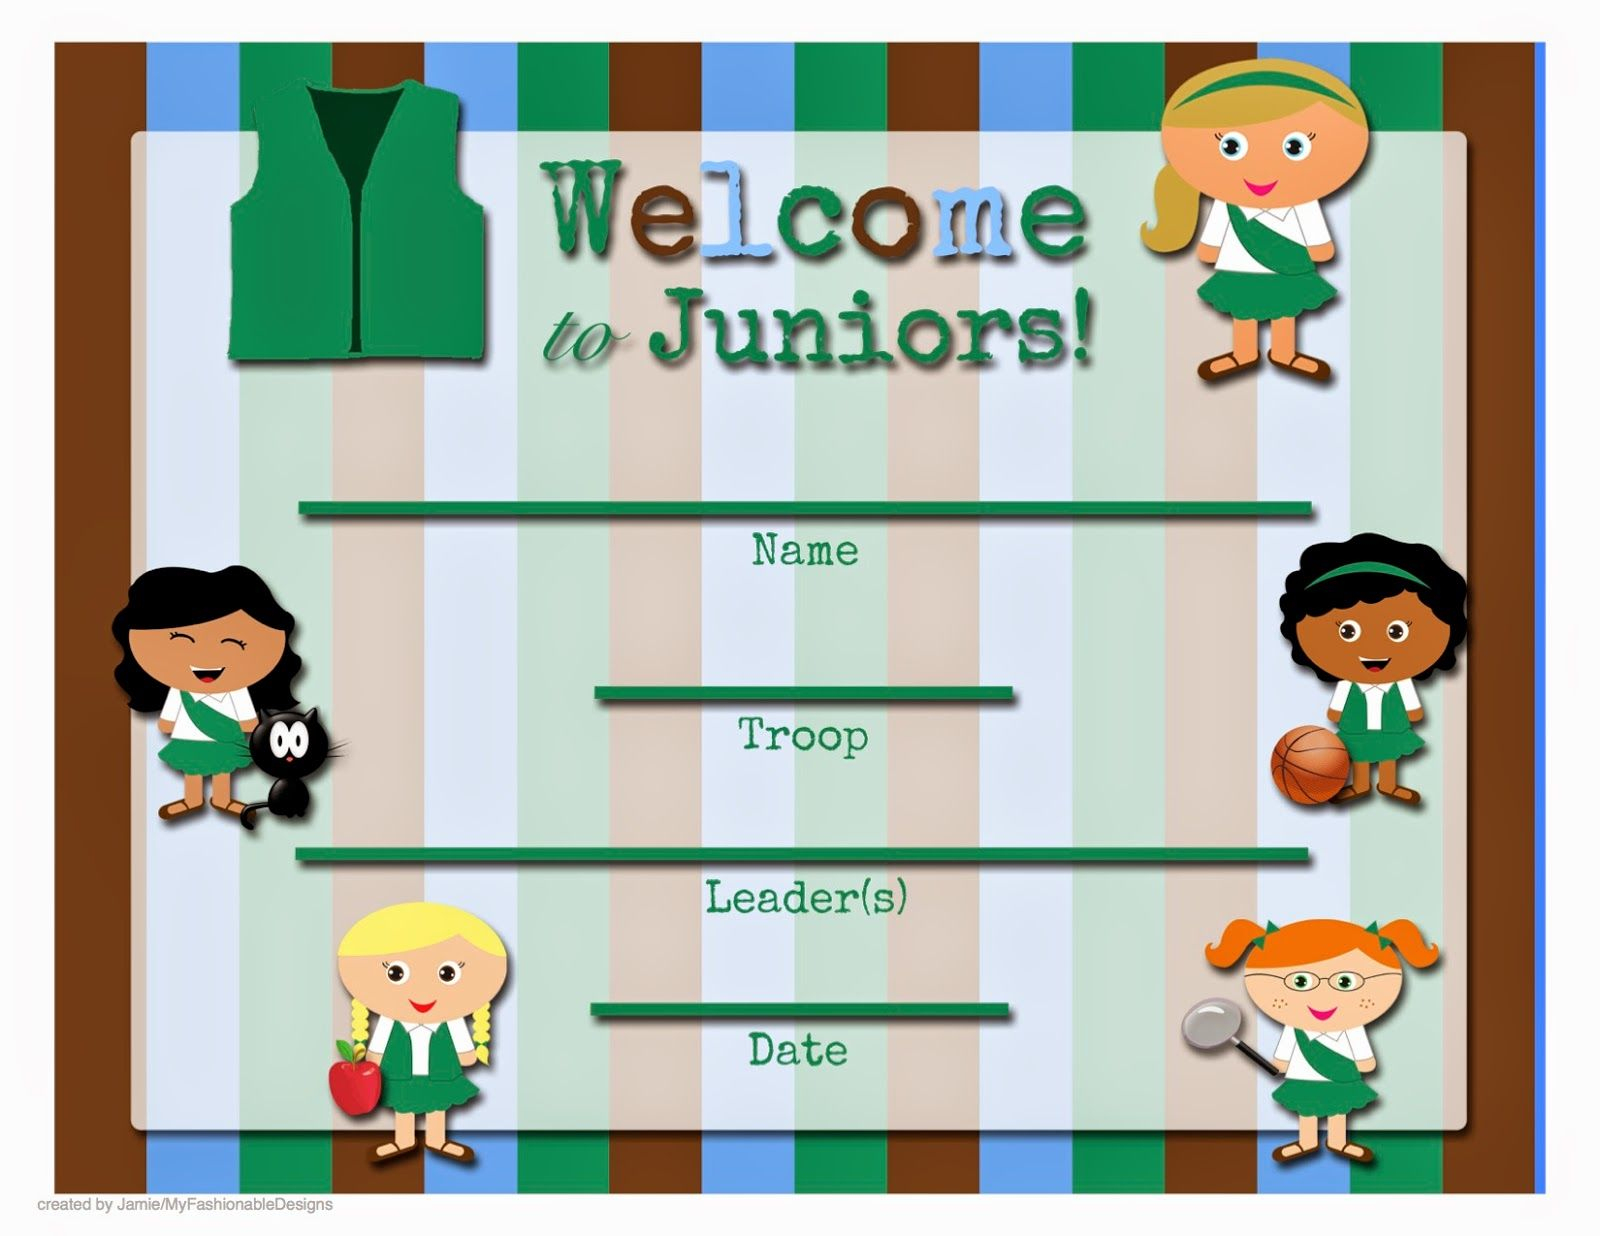 Enjoy These Free Printable Welcome Certificates! Click On The Image - Free Printable Camp Certificates